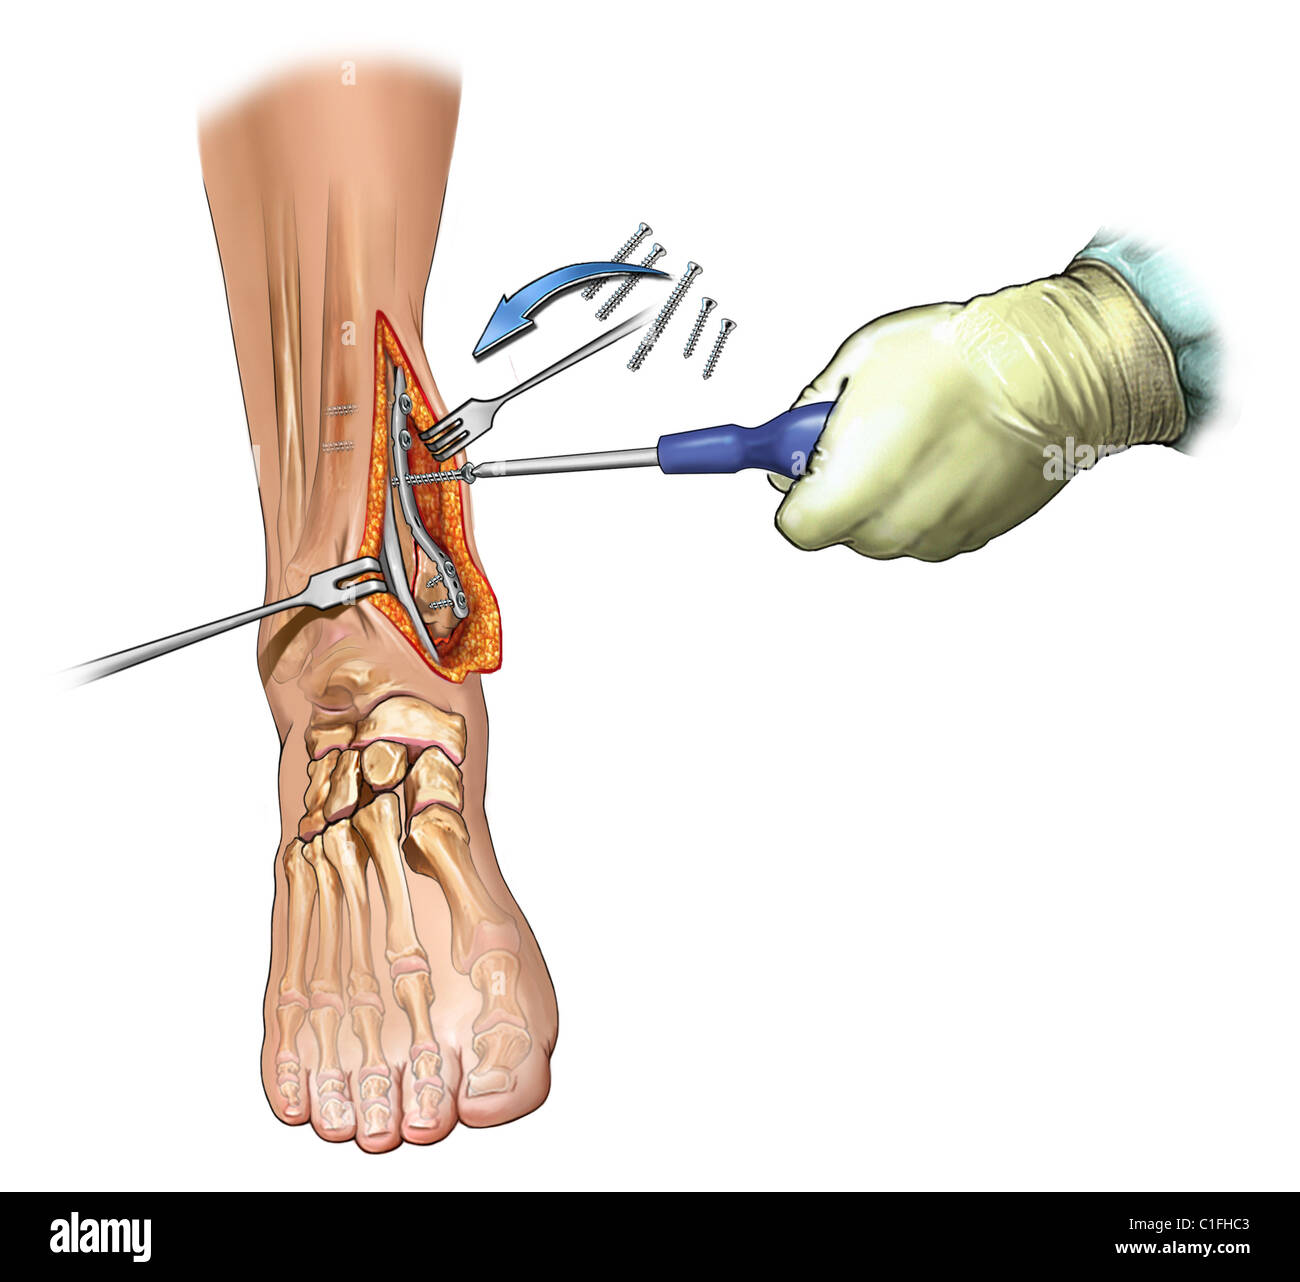 This medical illustration depicts the surgical fixation of comminuted medial maleollar fracture. - Stock Image